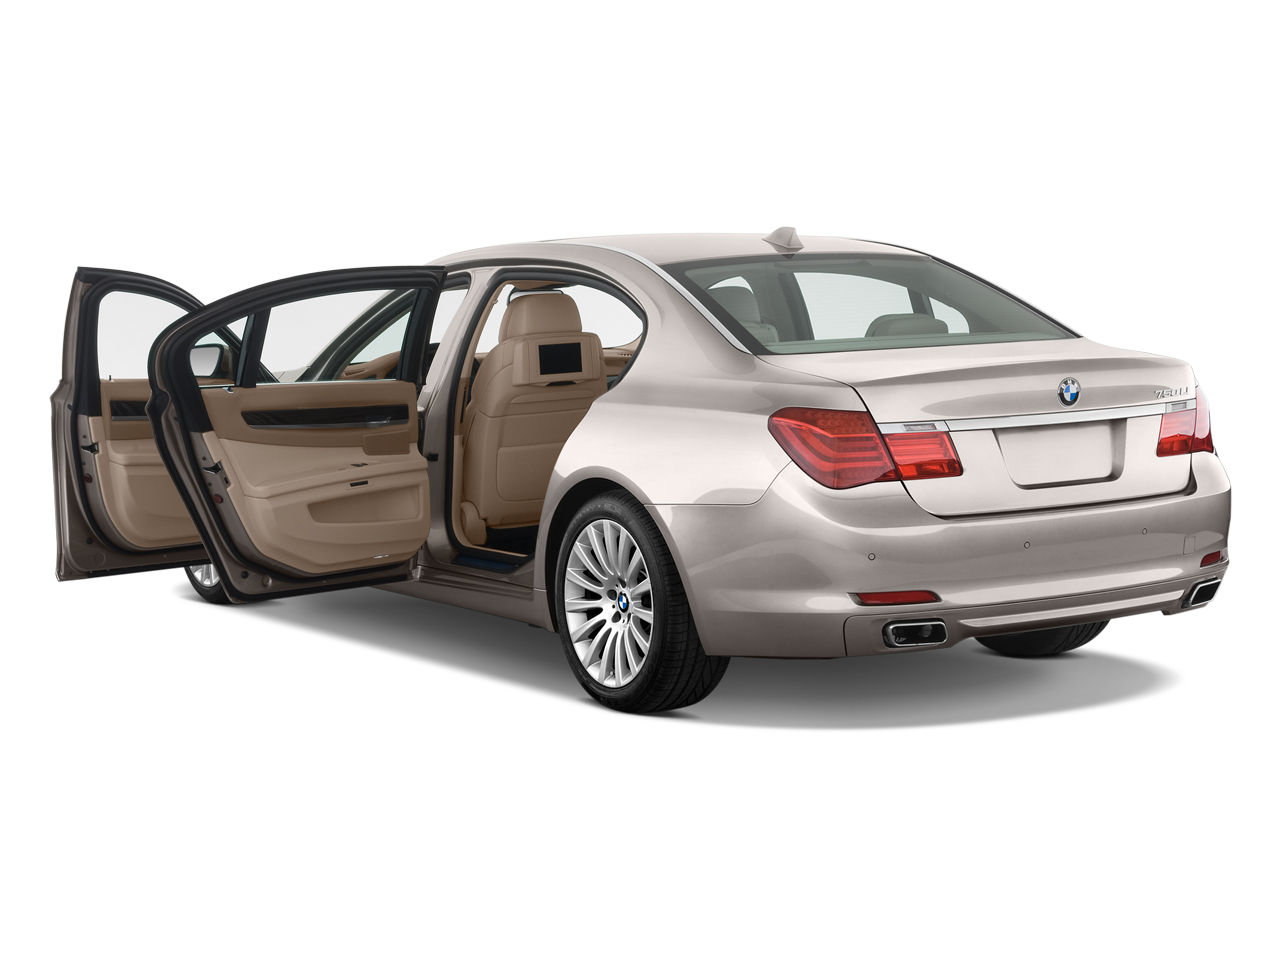 2009 BMW 750i - First Drive Review - Automobile Magazine